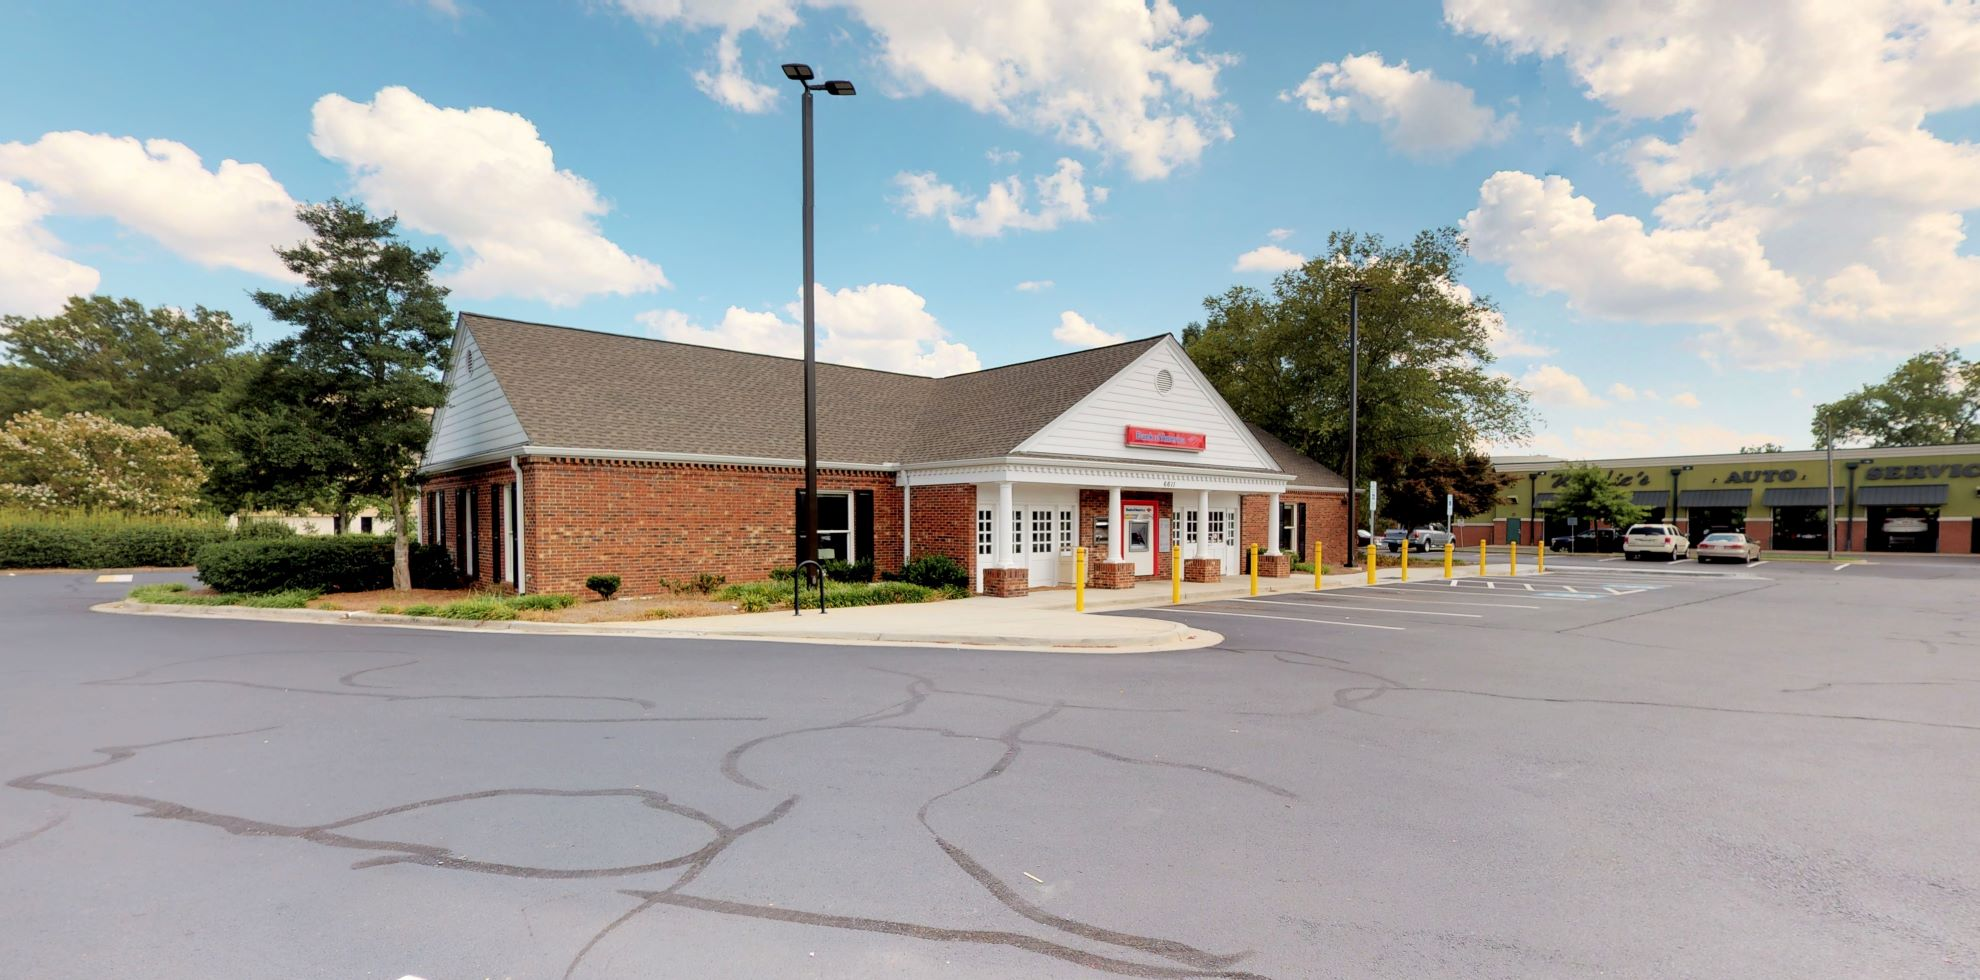 Bank of America financial center with drive-thru ATM   6611 Carmel Rd, Charlotte, NC 28226